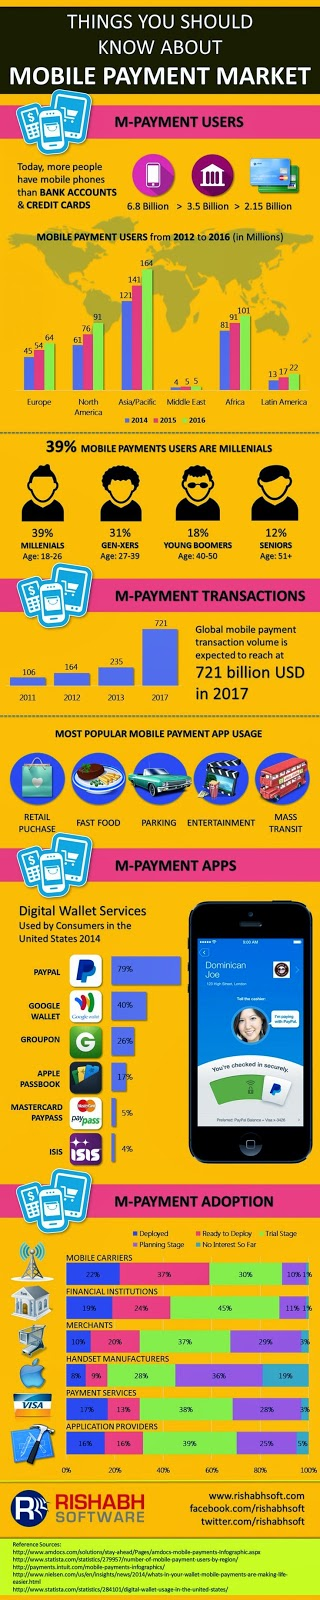 global mobile payments transactions at $721billion, asia pacific bigger market than america